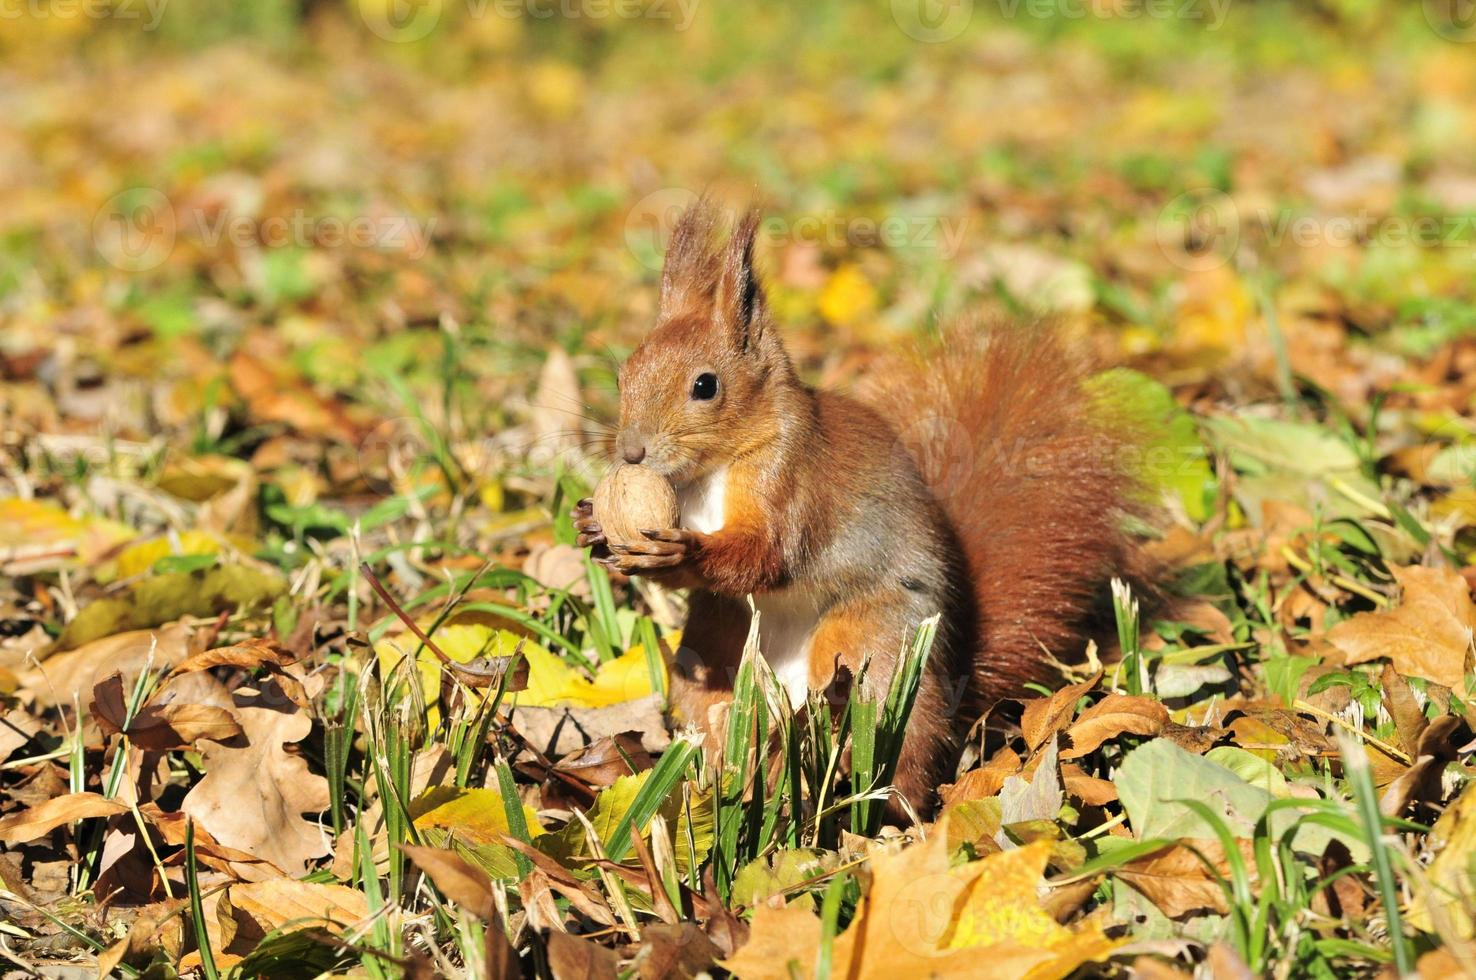 . Squirrel - a rodent of the squirrel family. photo